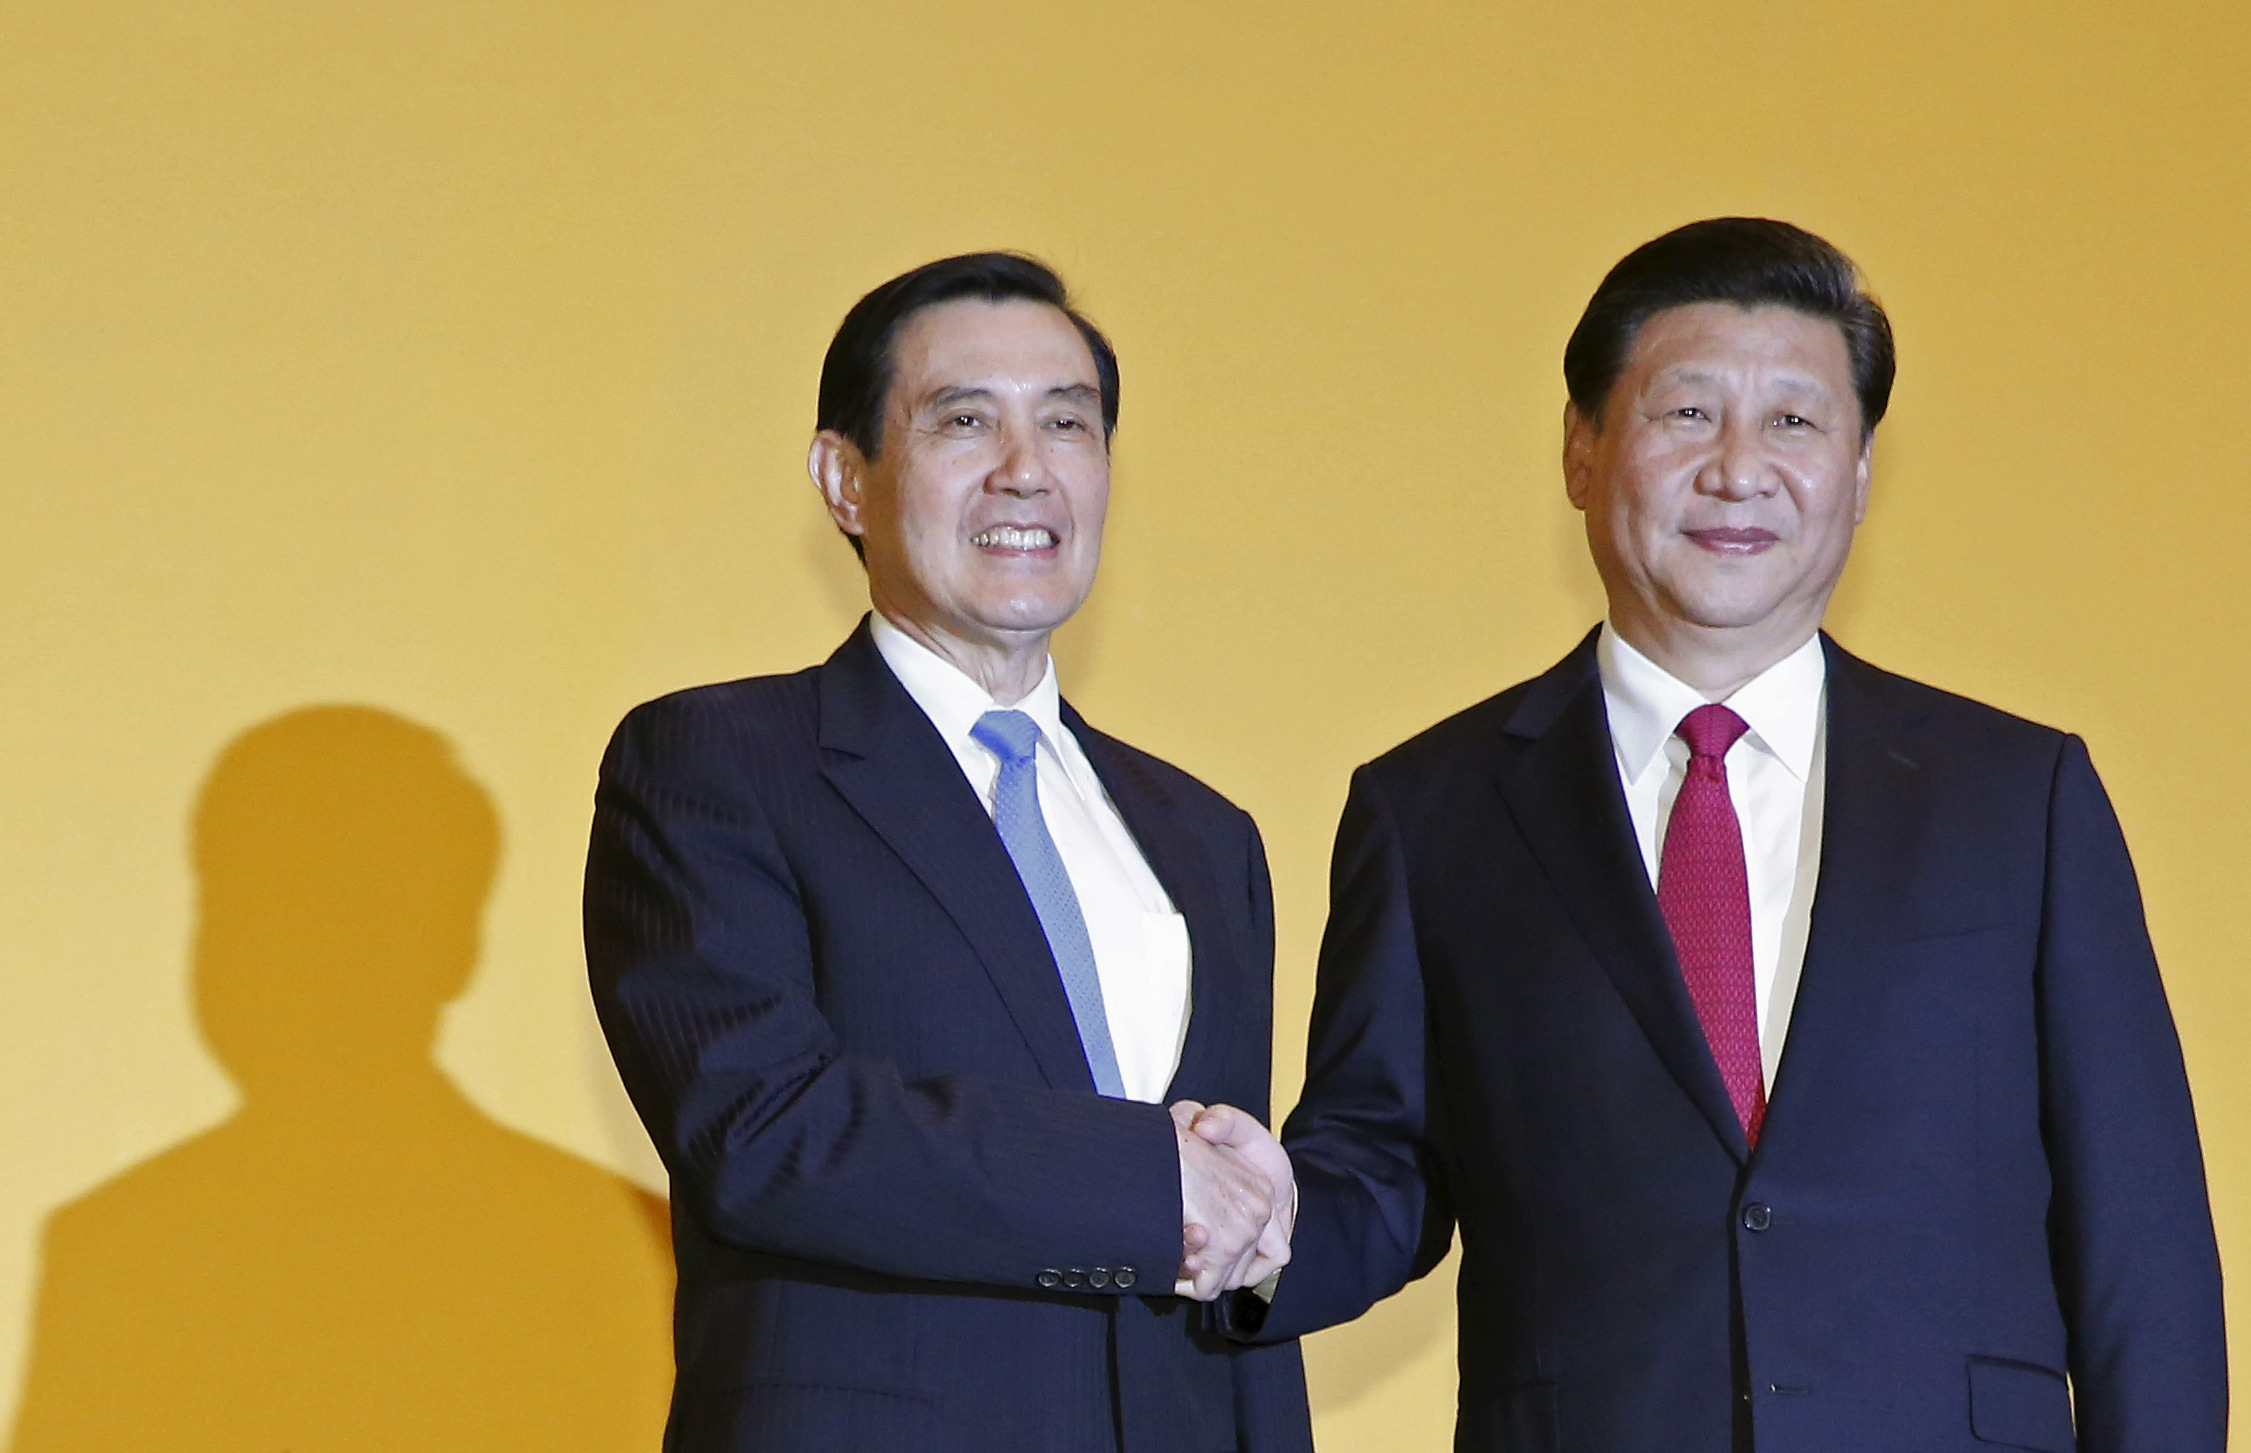 Chinese President Xi Jinping shakes hands with Taiwan's President Ma Ying-jeou during a summit in Singapore November 7, 2015